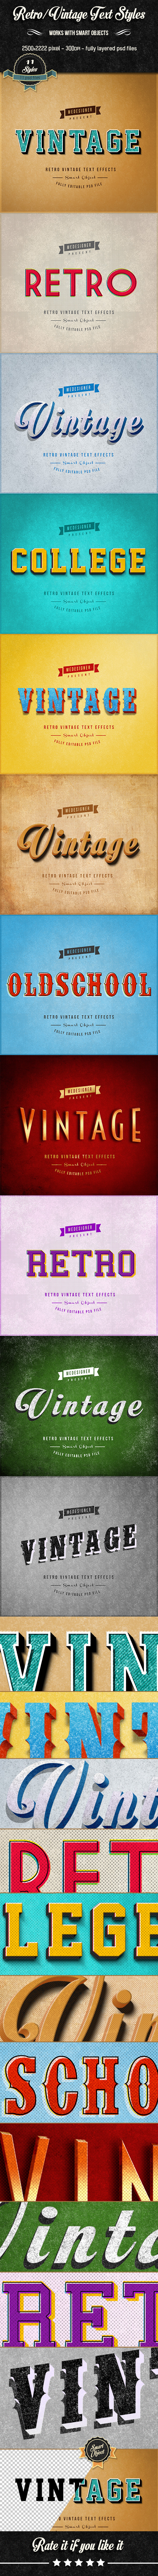 Retro / Vintage Text Effects V.1 - Text Effects Actions